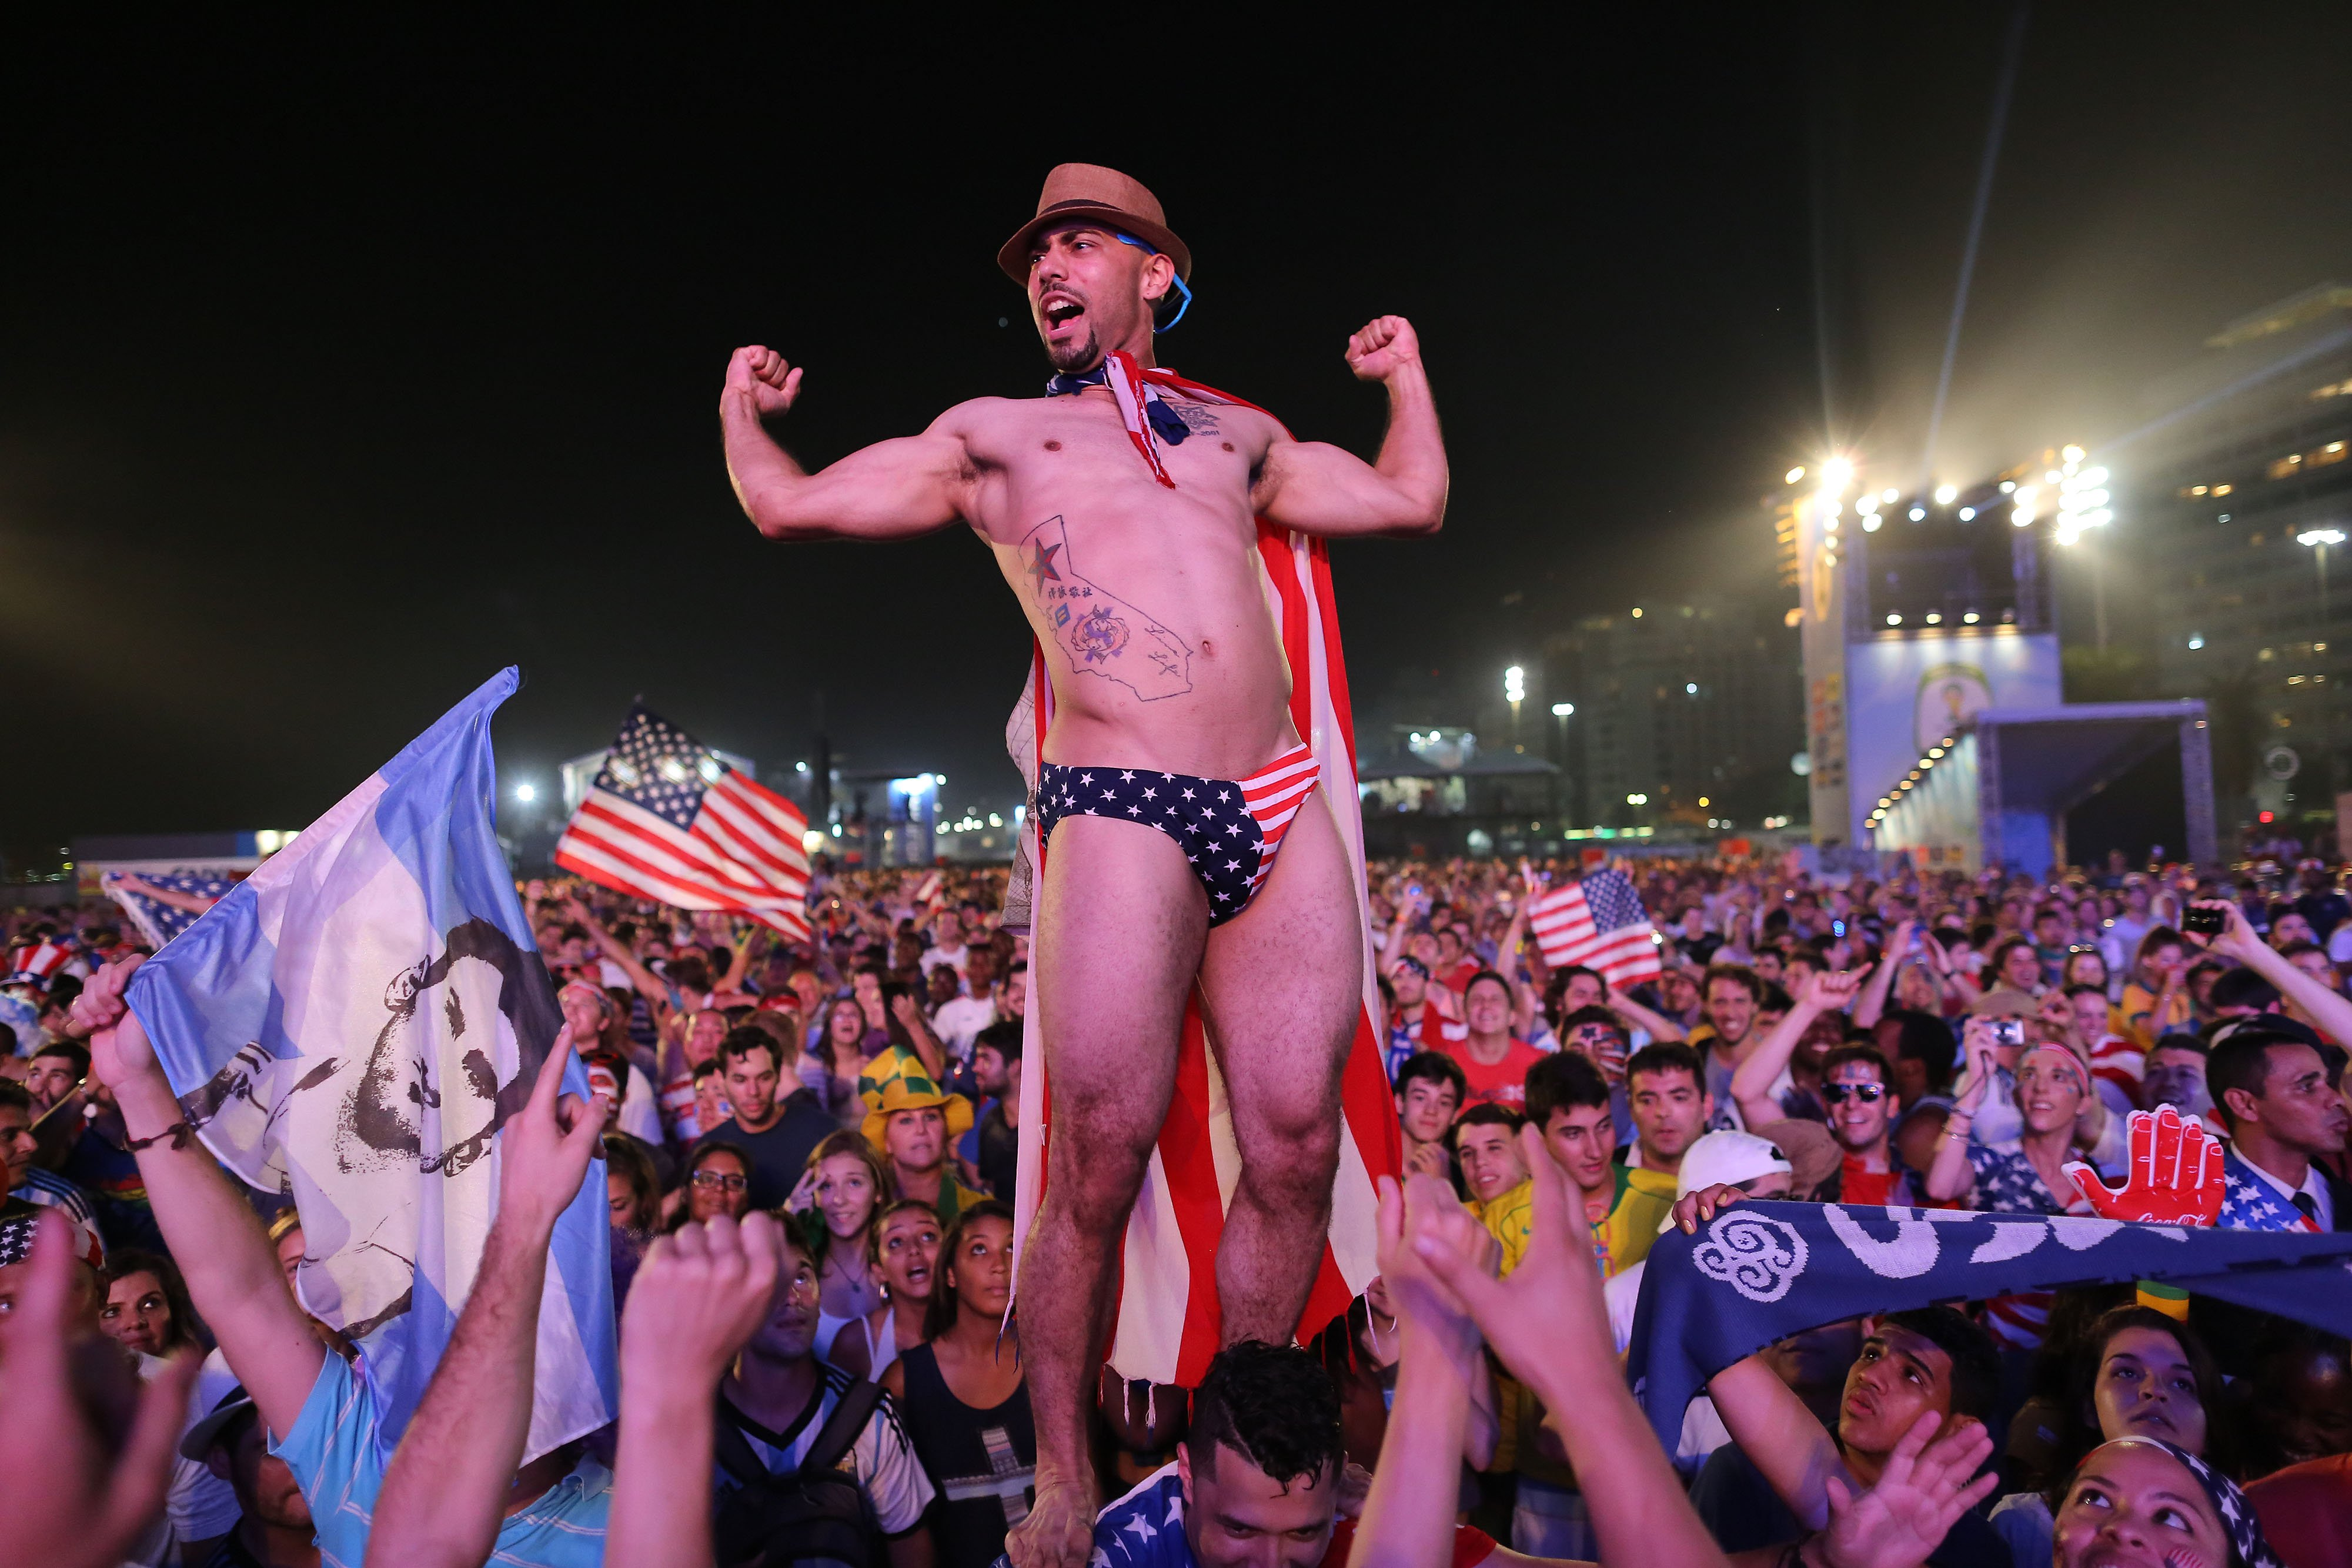 Soccer fans of the U.S. national soccer team cheer minutes before a live broadcast of the soccer World Cup match between USA and Ghana, inside the FIFA Fan Fest area in Rio de Janeiro on June 16, 2014.